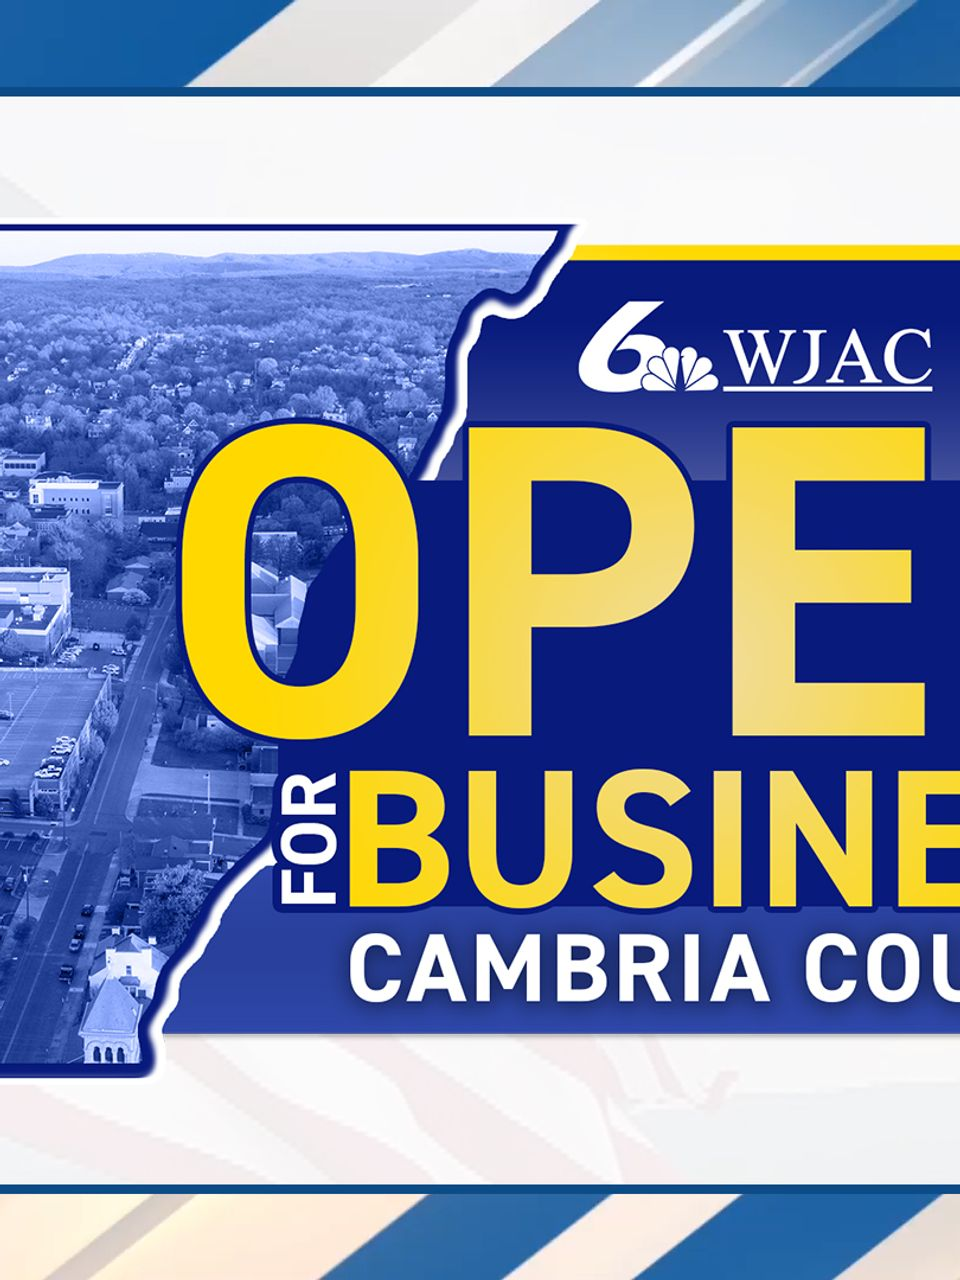 open for business cambria county wjac open for business cambria county wjac